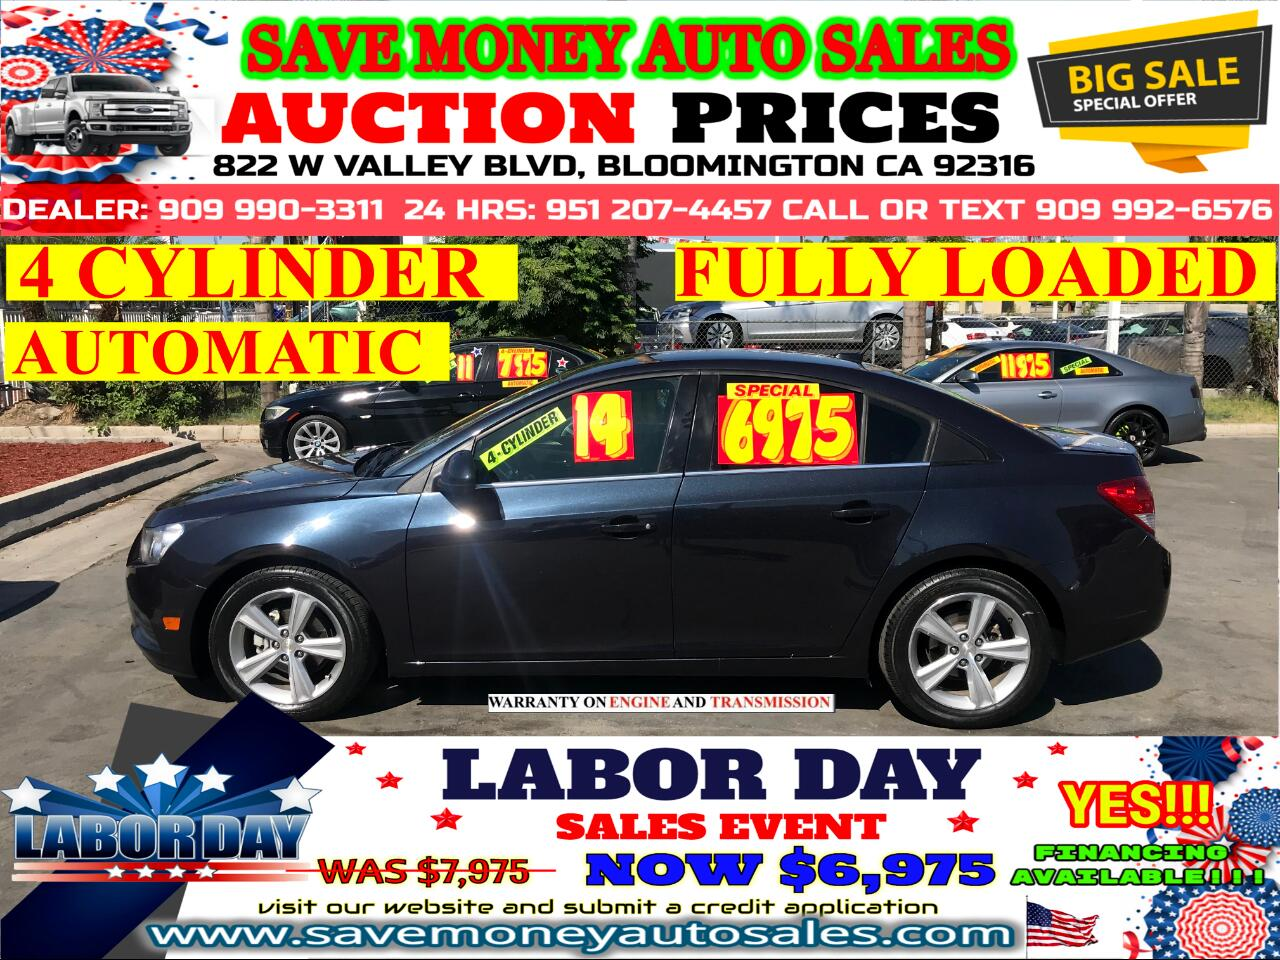 2014 Chevrolet Cruze LT> 4 CYLINDER> EXTRA CLEAN> LOW MILES